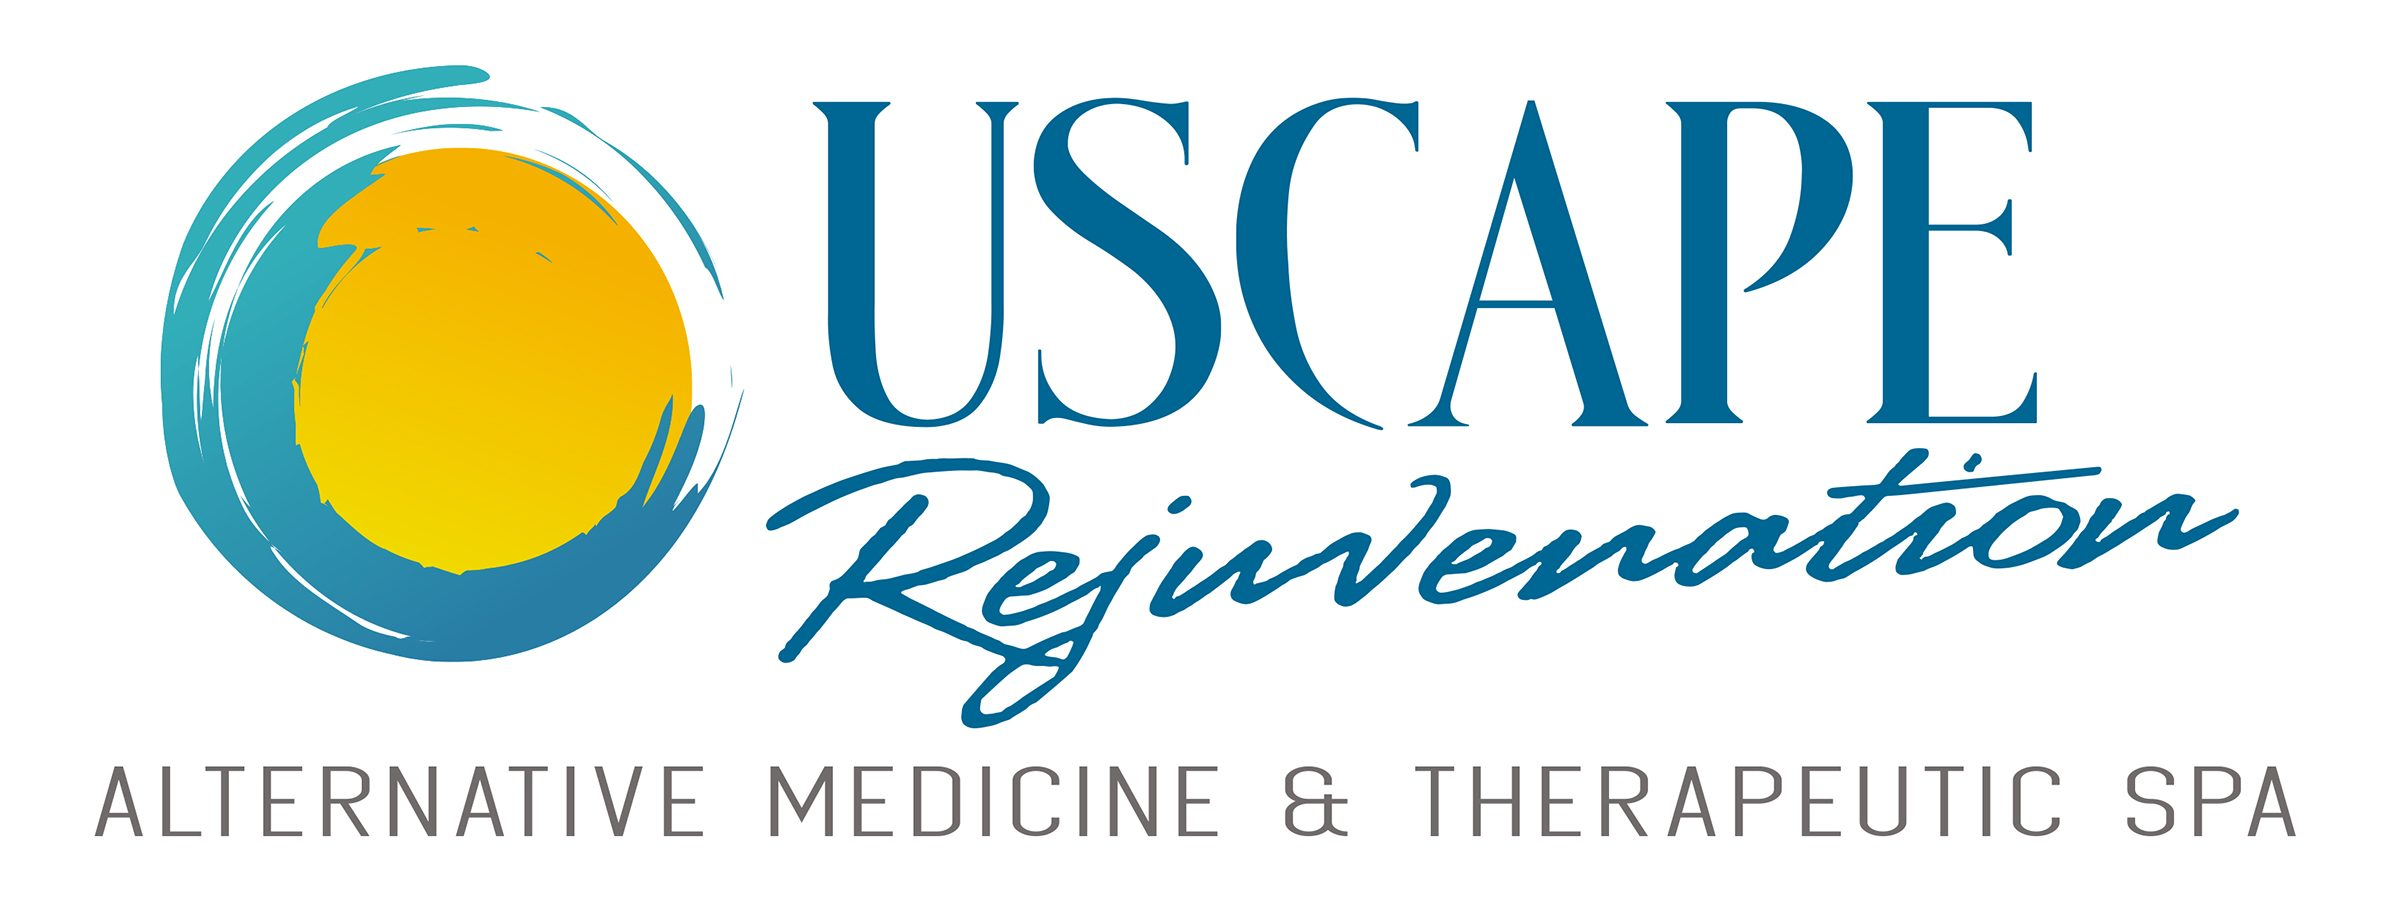 Uscape Rejuvenation Wellness